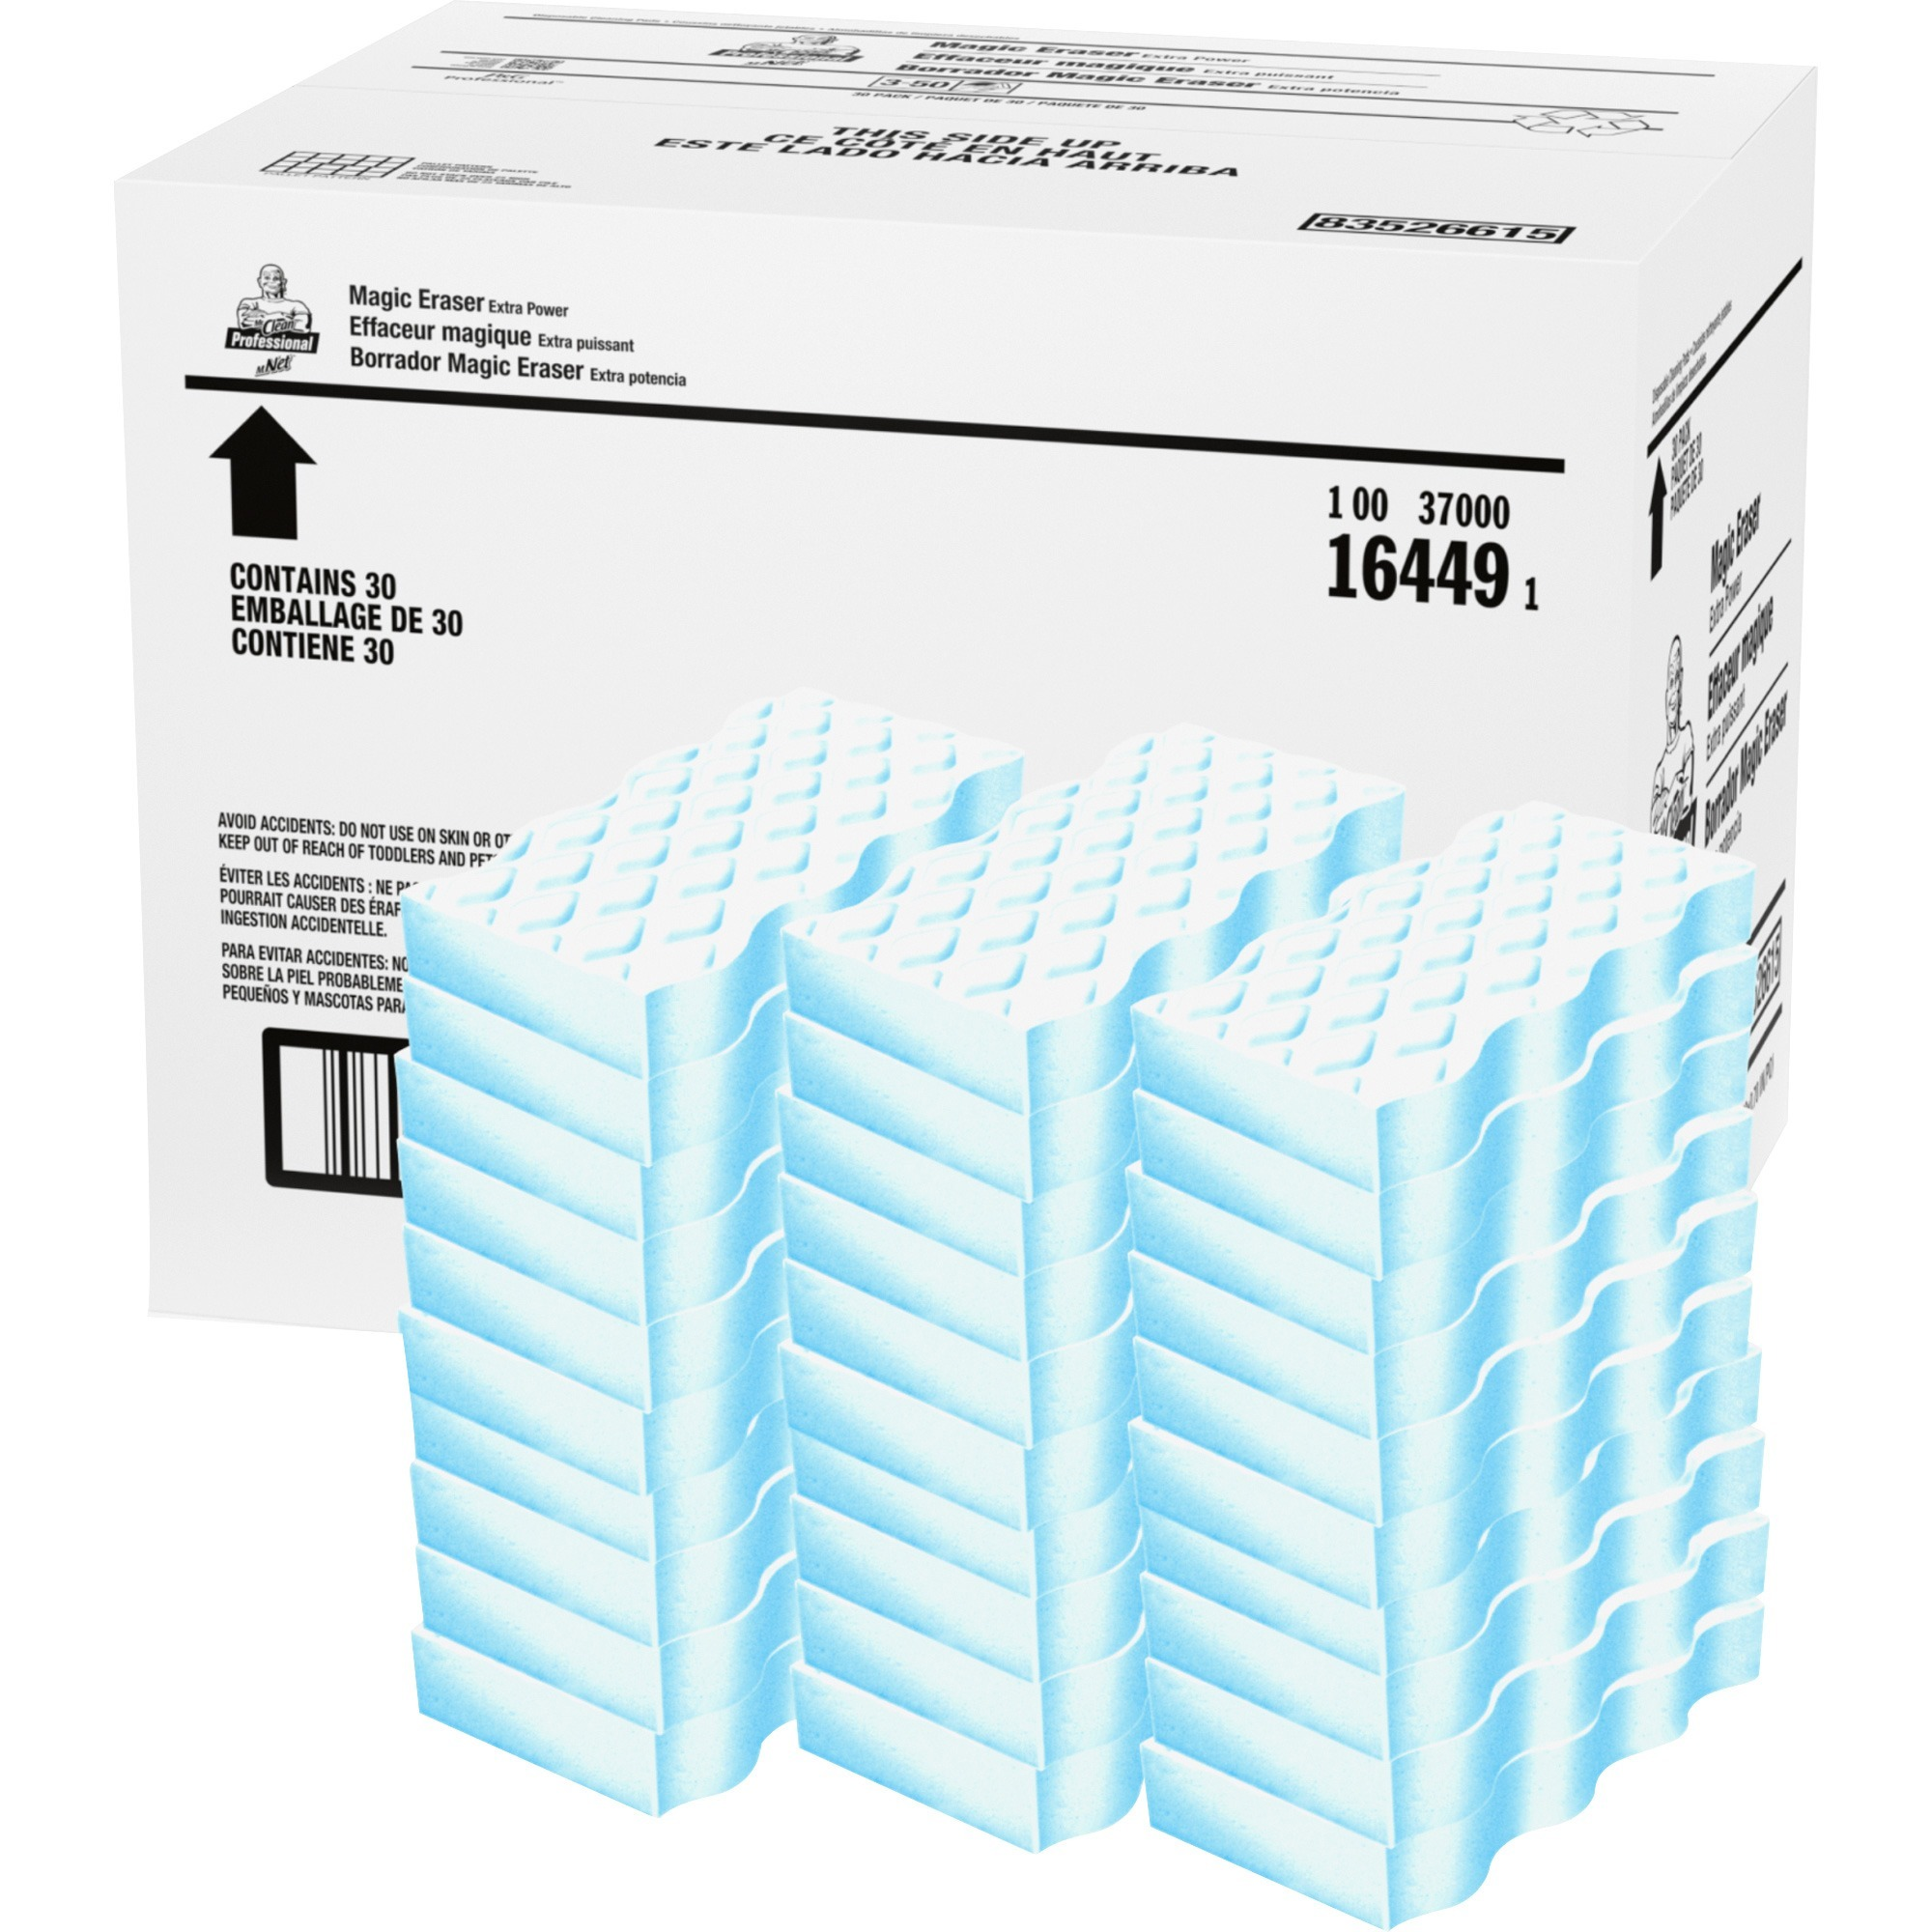 Mr. Clean Extra Durable Pads, Blue, White, 30 / Carton (Quantity)